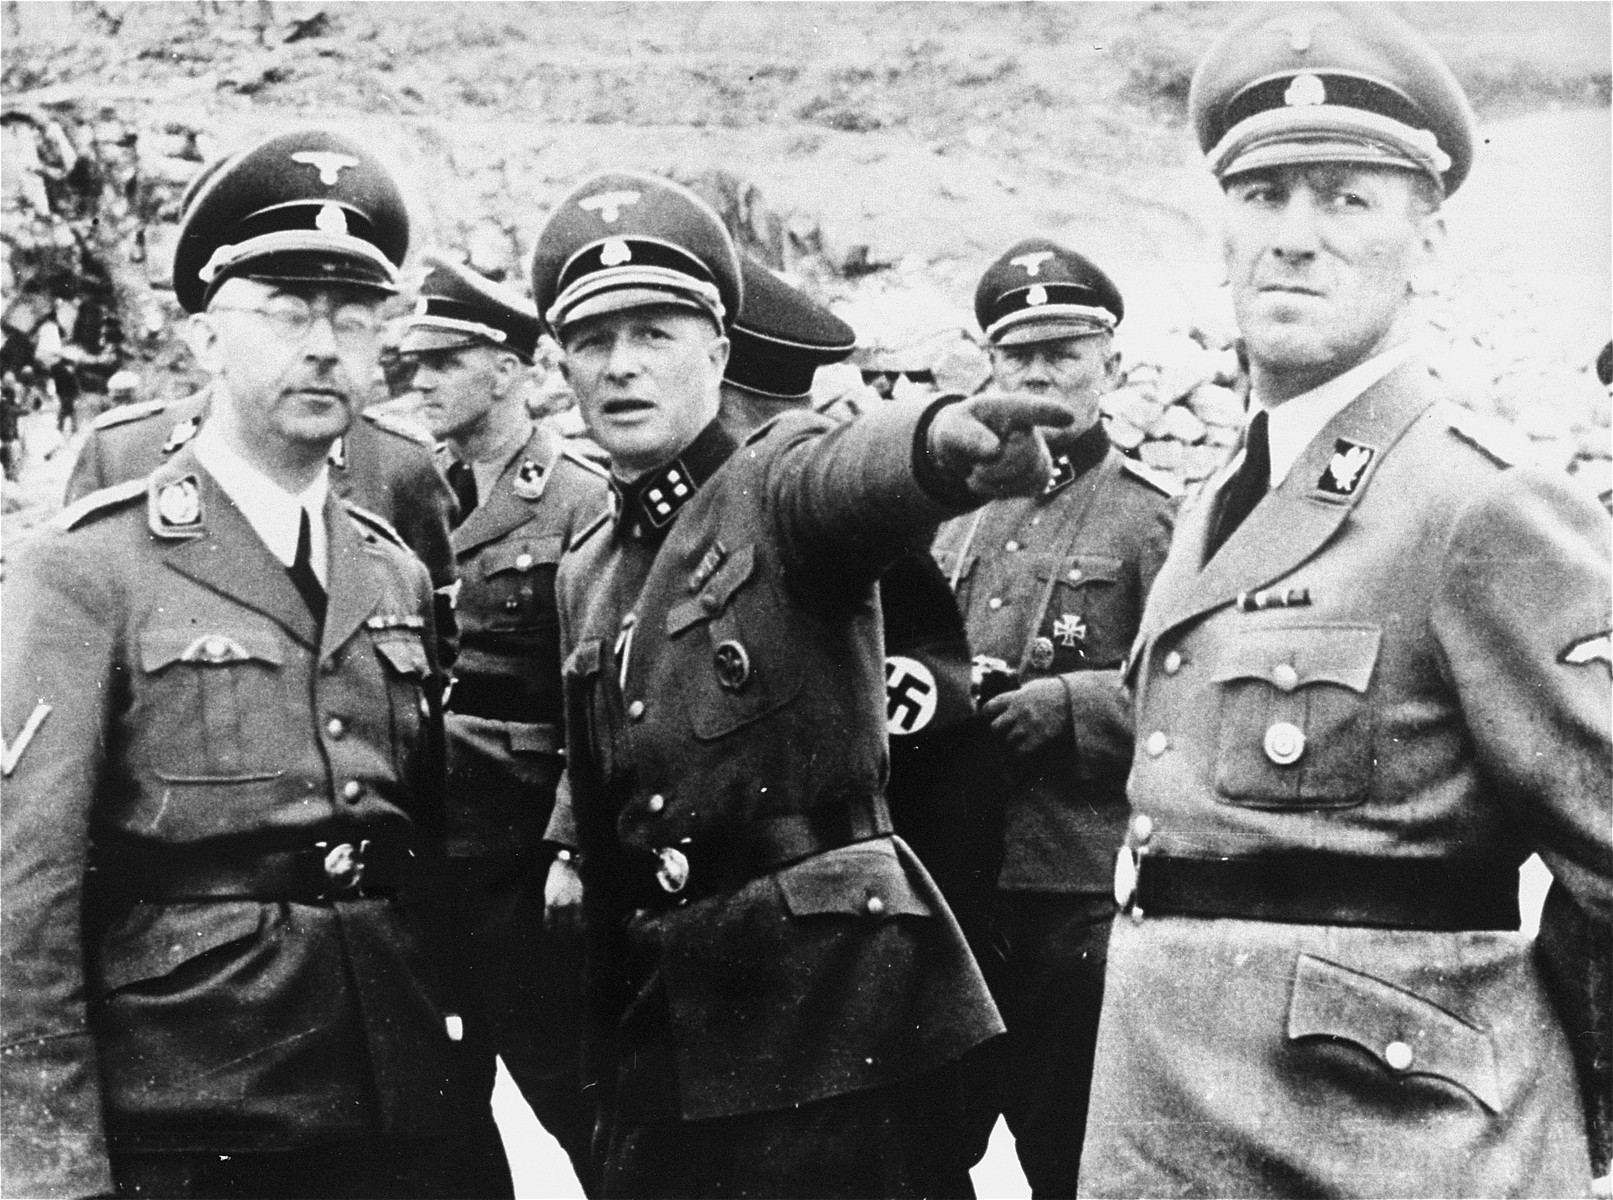 Commandant Franz Ziereis points out something to Heinrich Himmler and other SS officials while viewing the quarry during an inspection tour of the Mauthausen concentration camp.    Pictured in front from left to right are: Heinrich Himmler, Franz Ziereis and Ernst Kaltenbrunner. To the right of Kaltenbrunner is Josef Kiermaier.